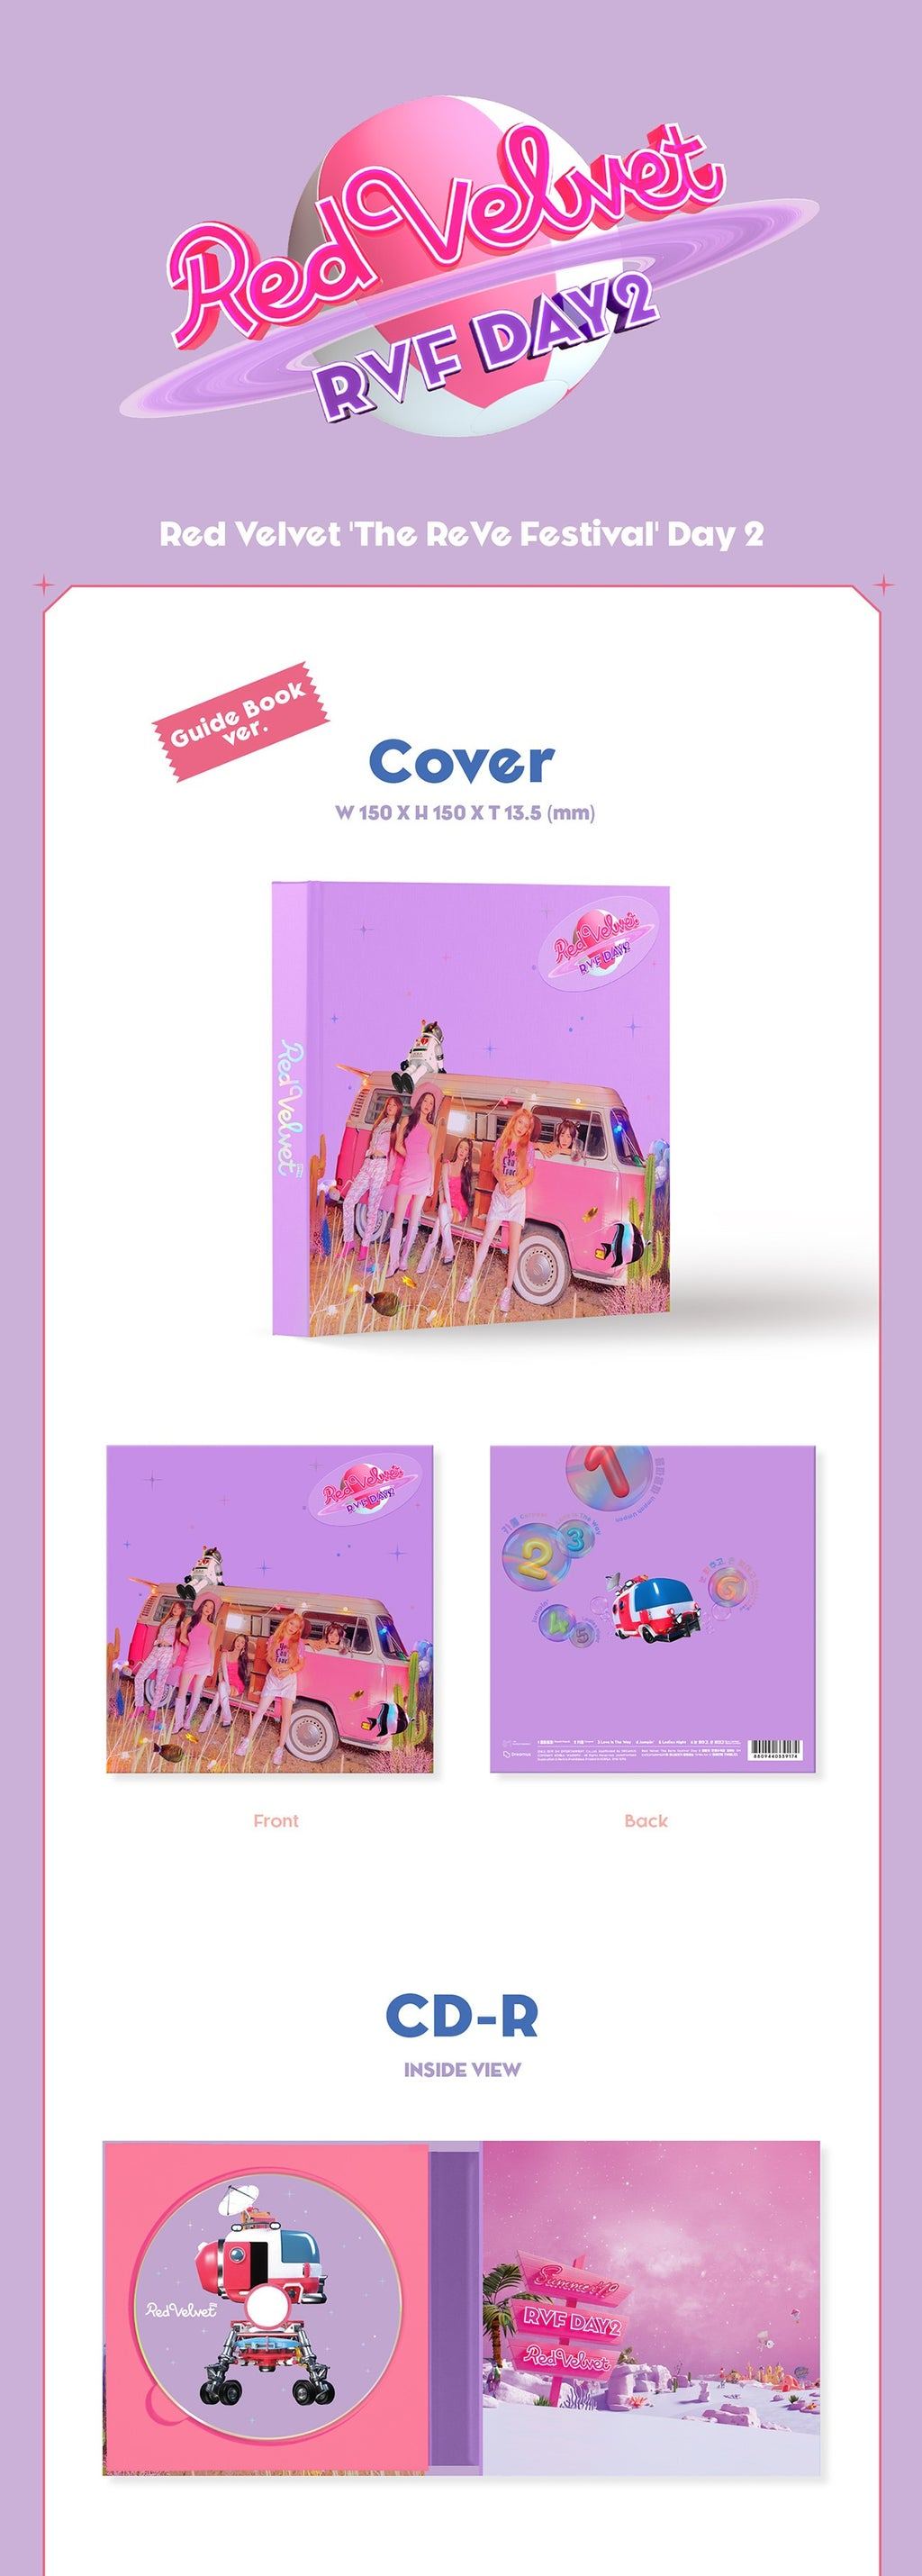 Red Velvet - The ReVe Festival Day 2 - Guide Book Version - Pre-Order